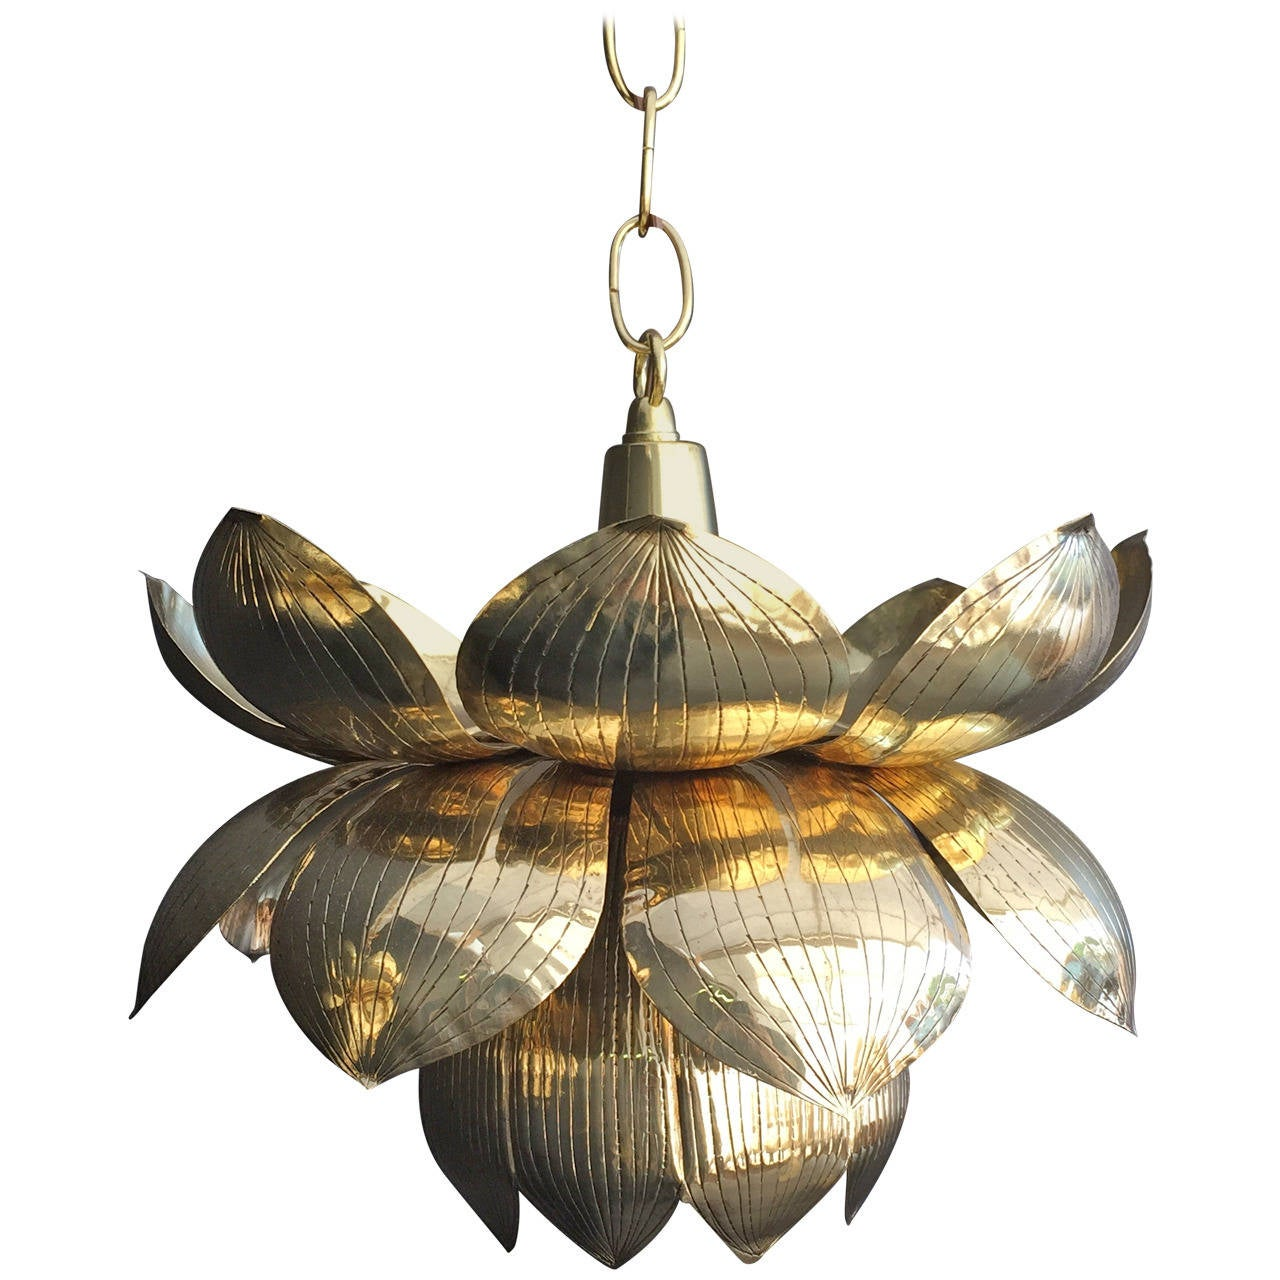 Small brass lotus pendant light by feldman at 1stdibs small brass lotus pendant light by feldman for sale aloadofball Image collections